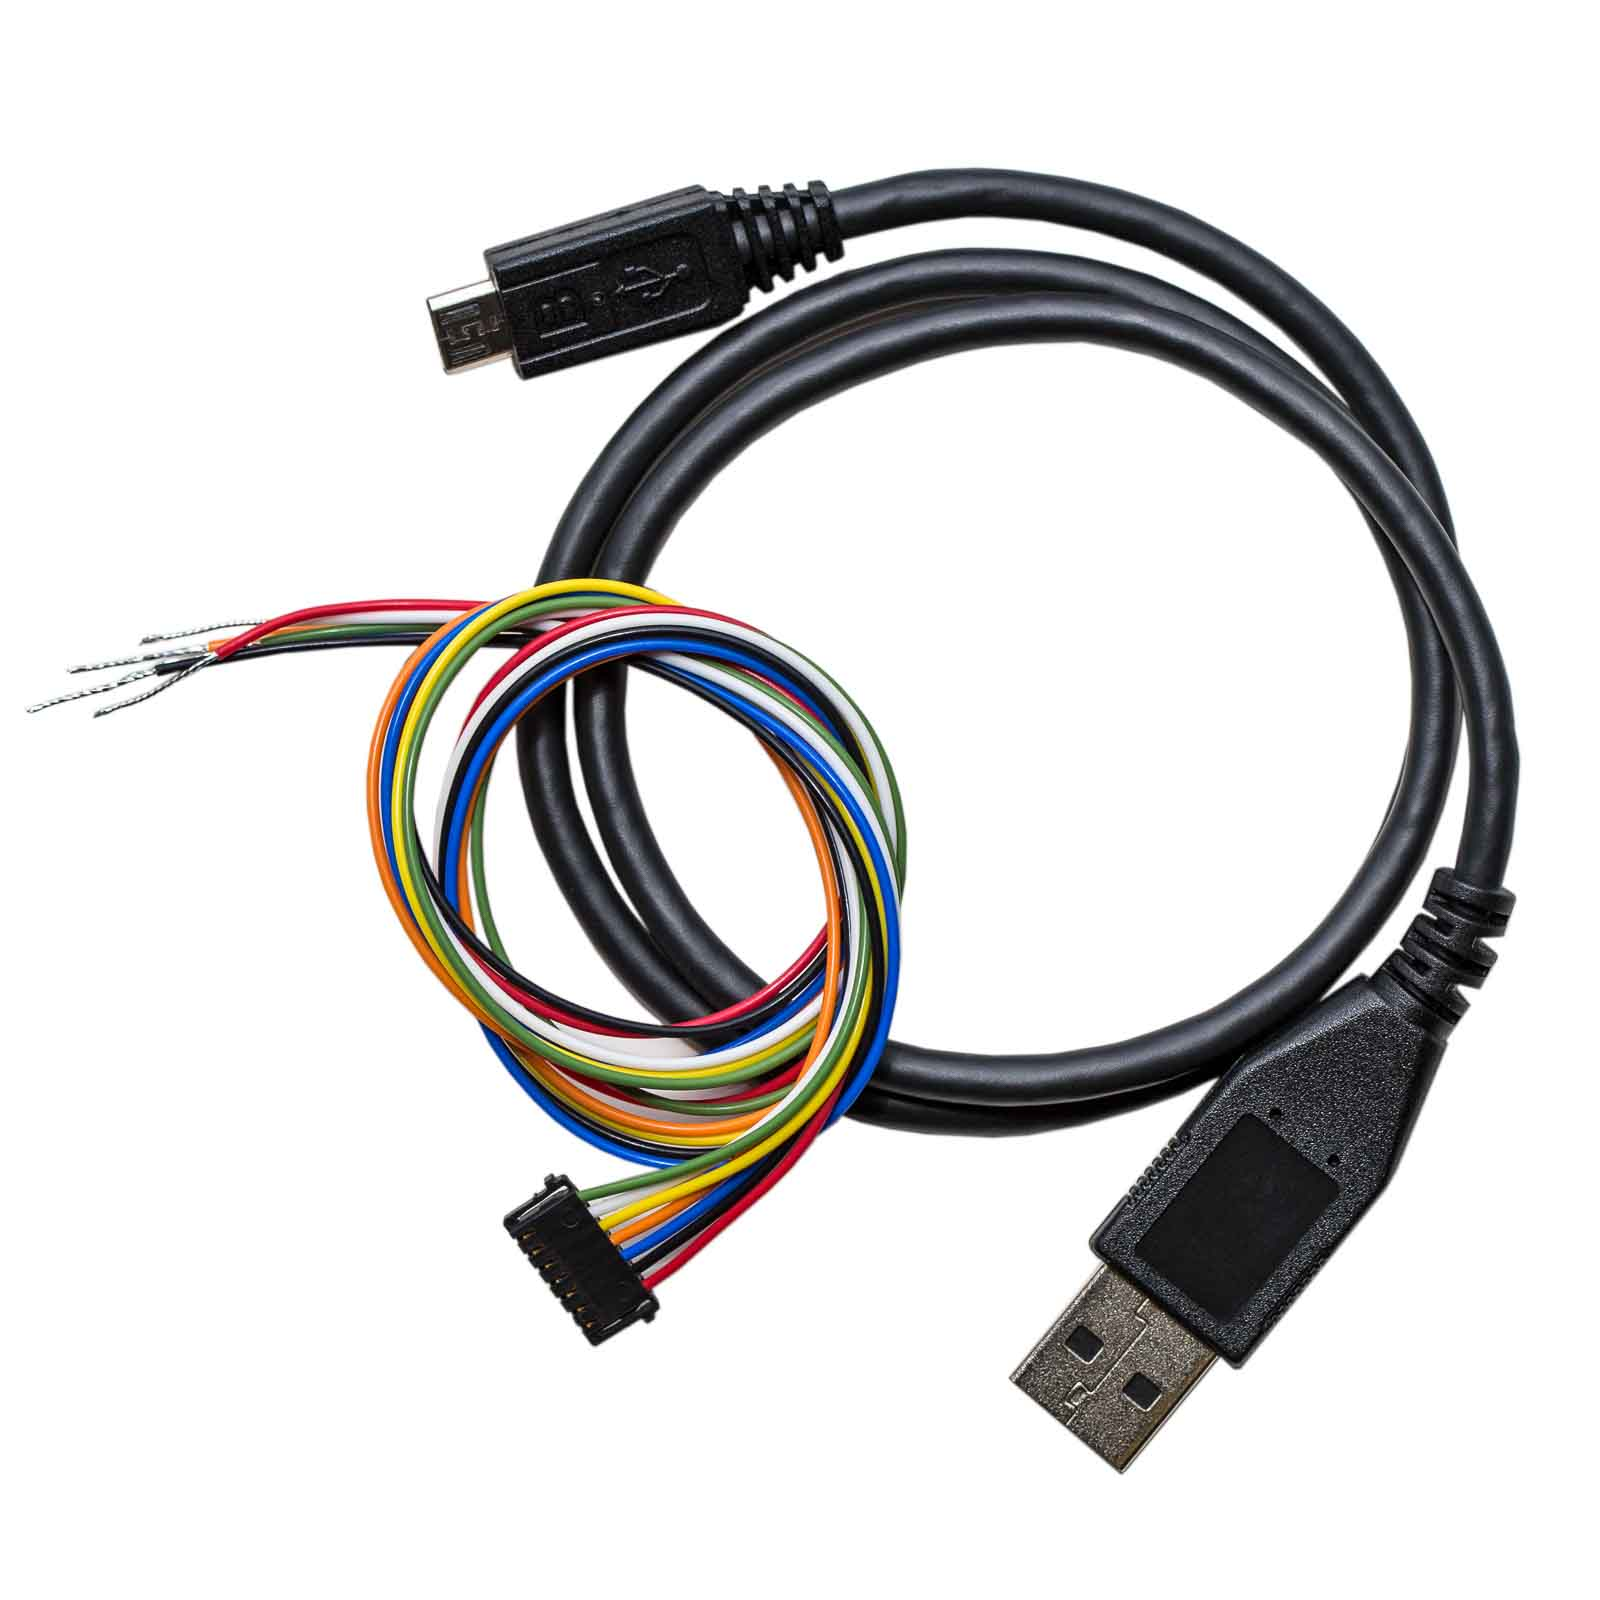 SF10_30 product contents cabling